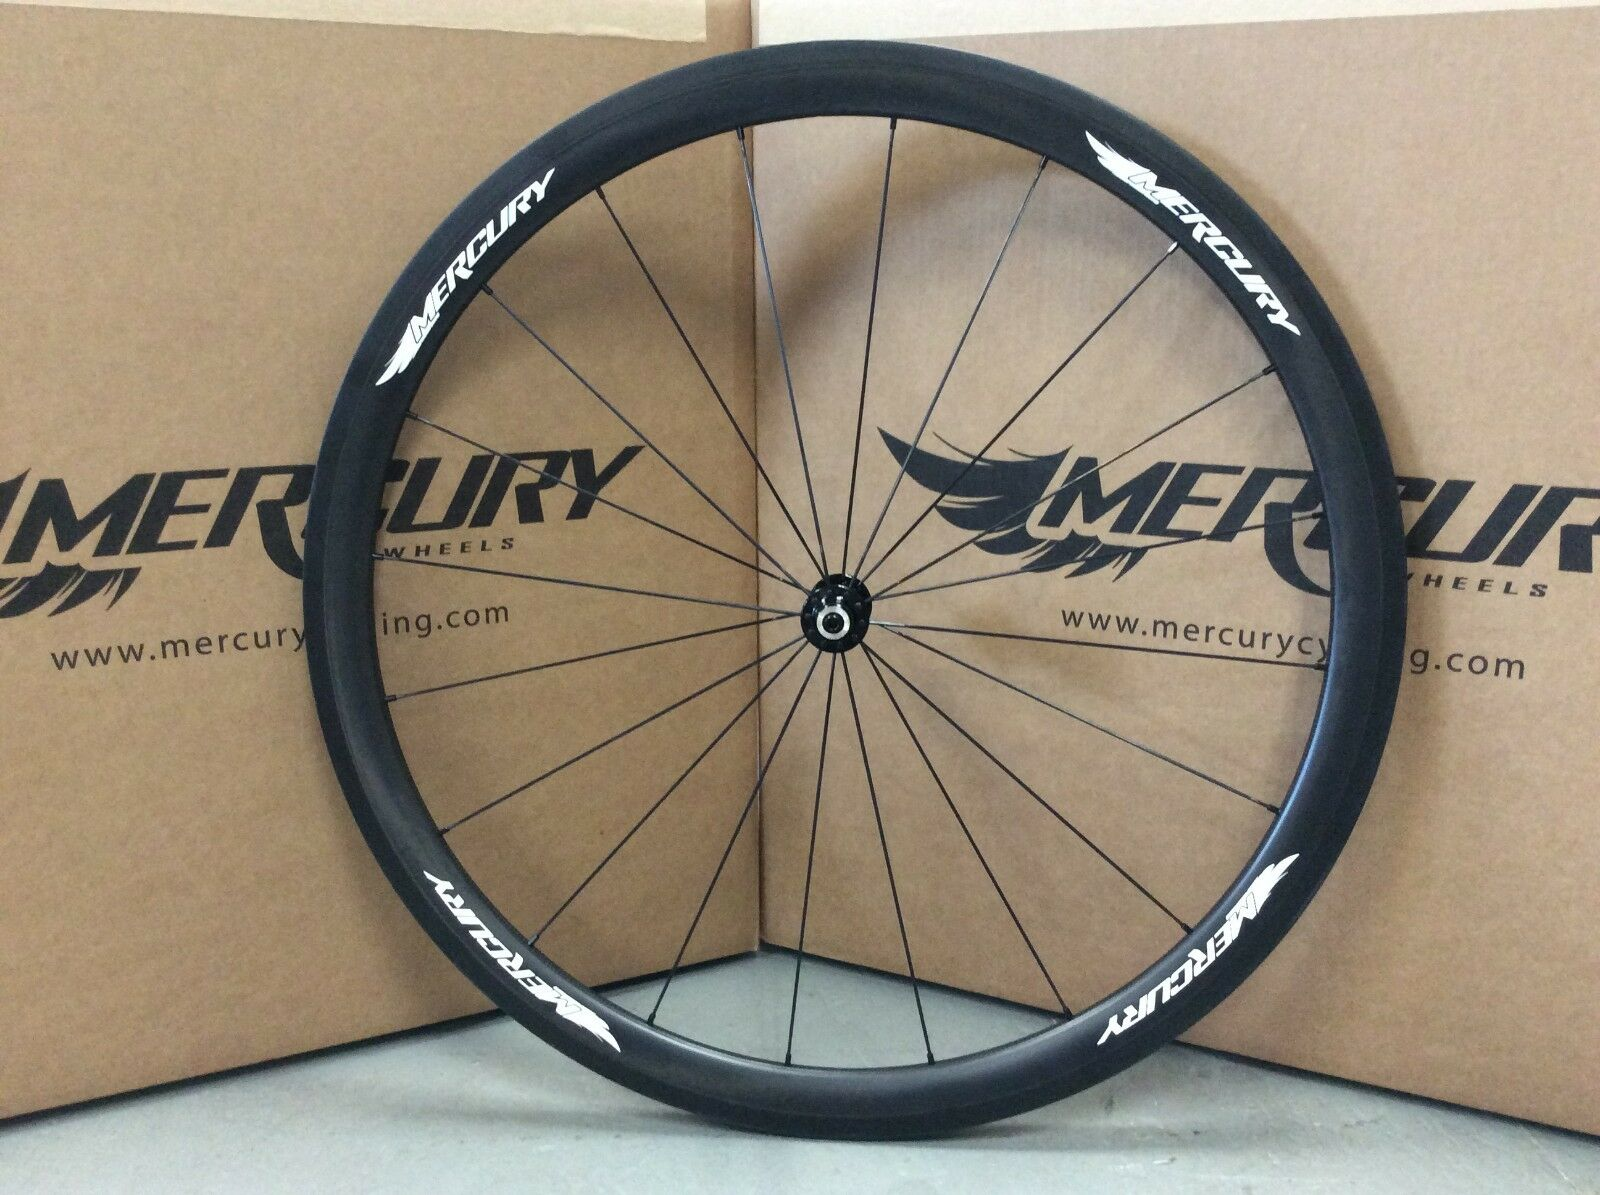 2015 Mercury Cycling M3T Carbon Tubular 700c Front Wheel - NEW